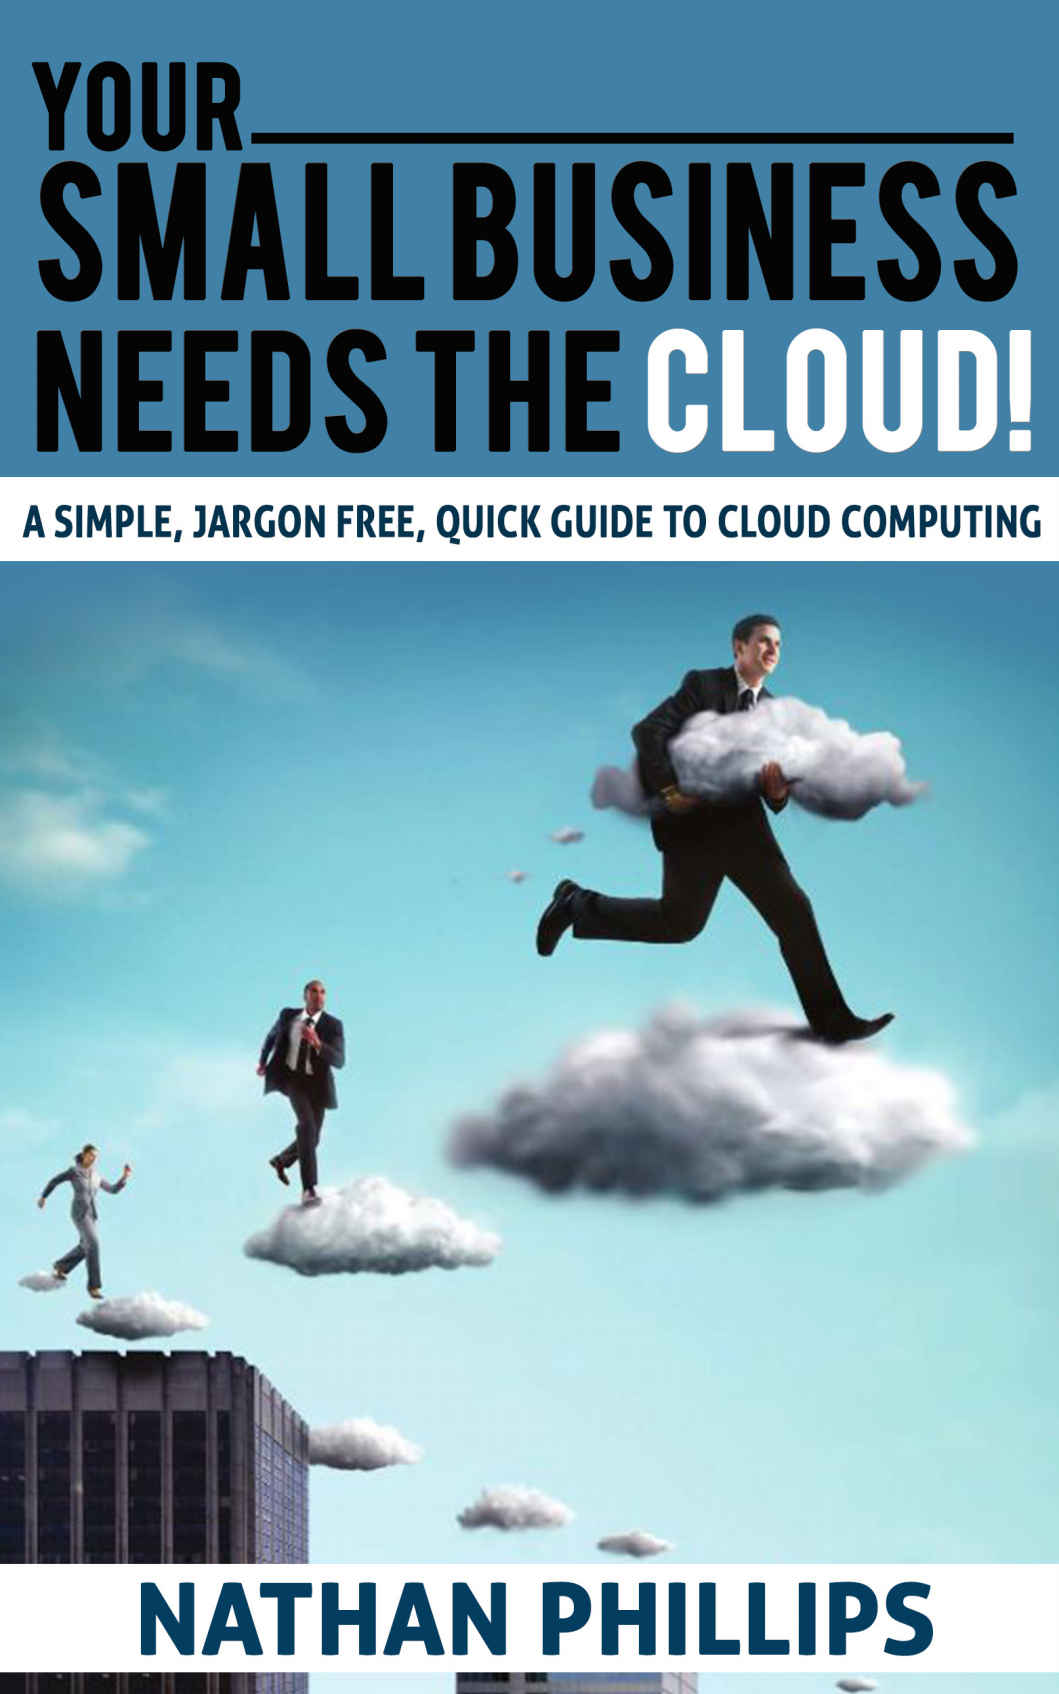 Your Small Business Needs The Cloud: A simple, jargon free, quick guide to cloud computing by Nathan Phillips